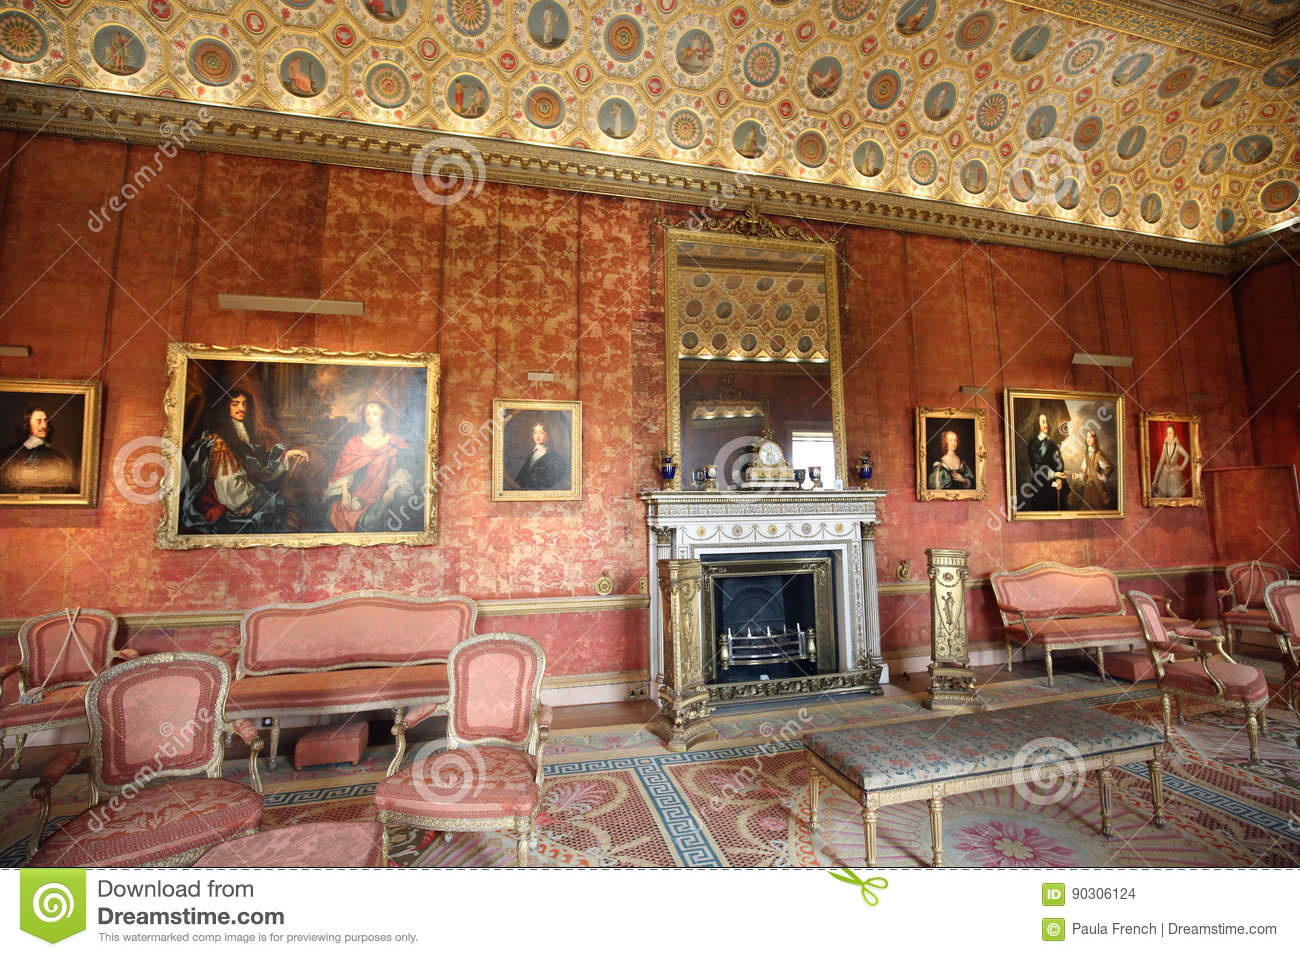 The Magnificent Living room is full of Paintings of Royalty from years gone by.